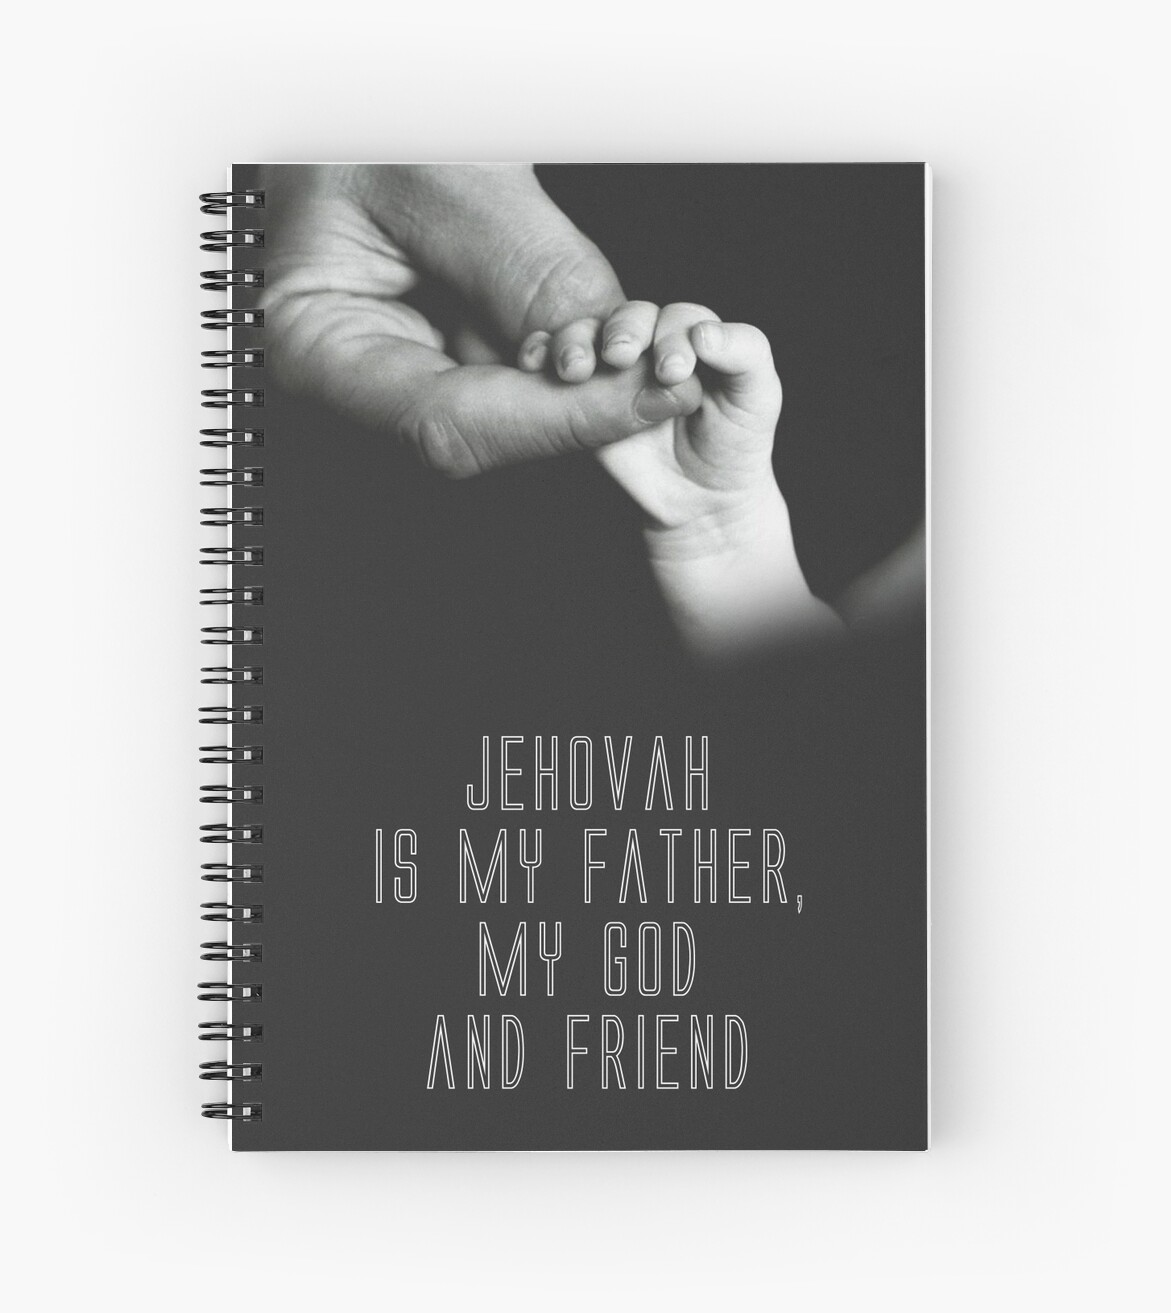 My Father, My God, and Friend by JW ARTS & CRAFTS